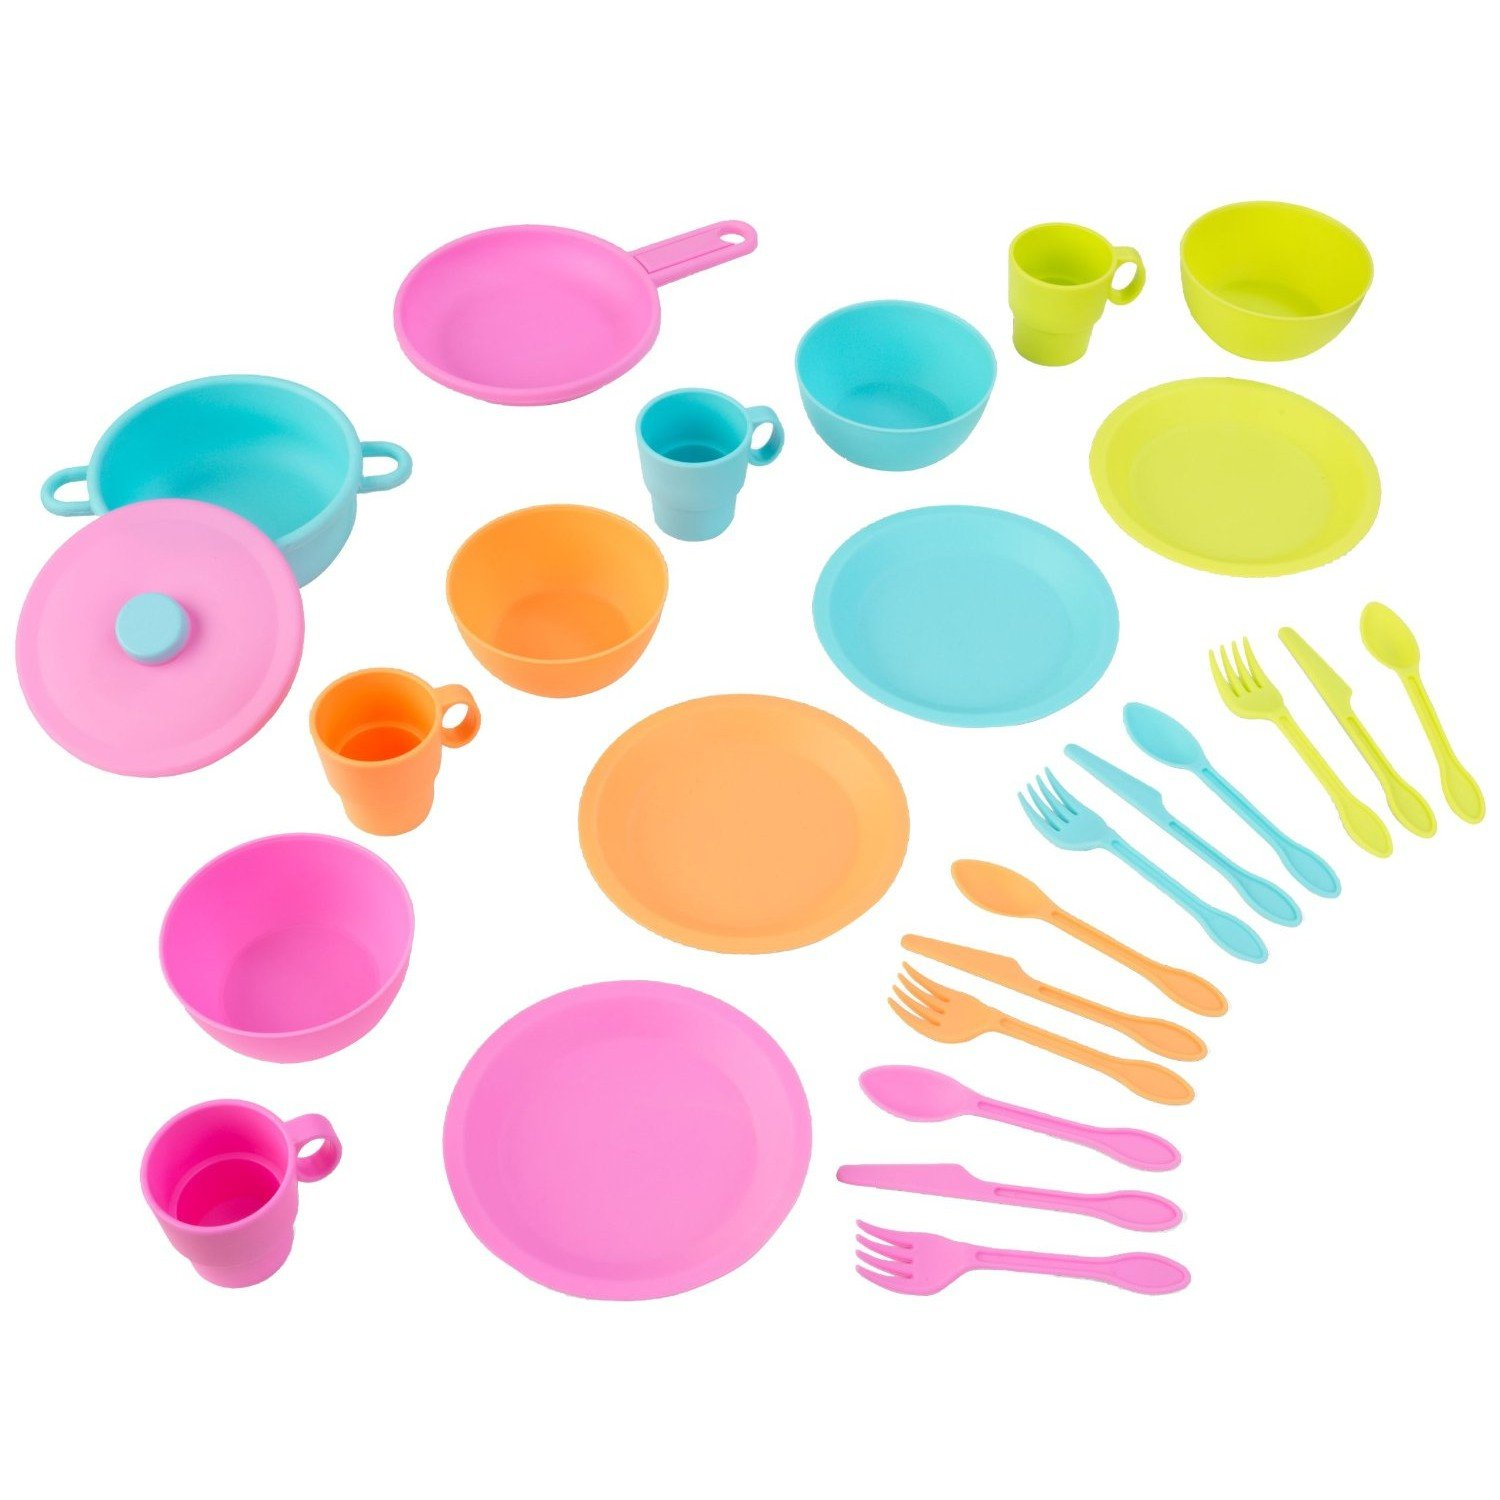 KidKraft 27pc Cookware Set - Brights by KidKraft